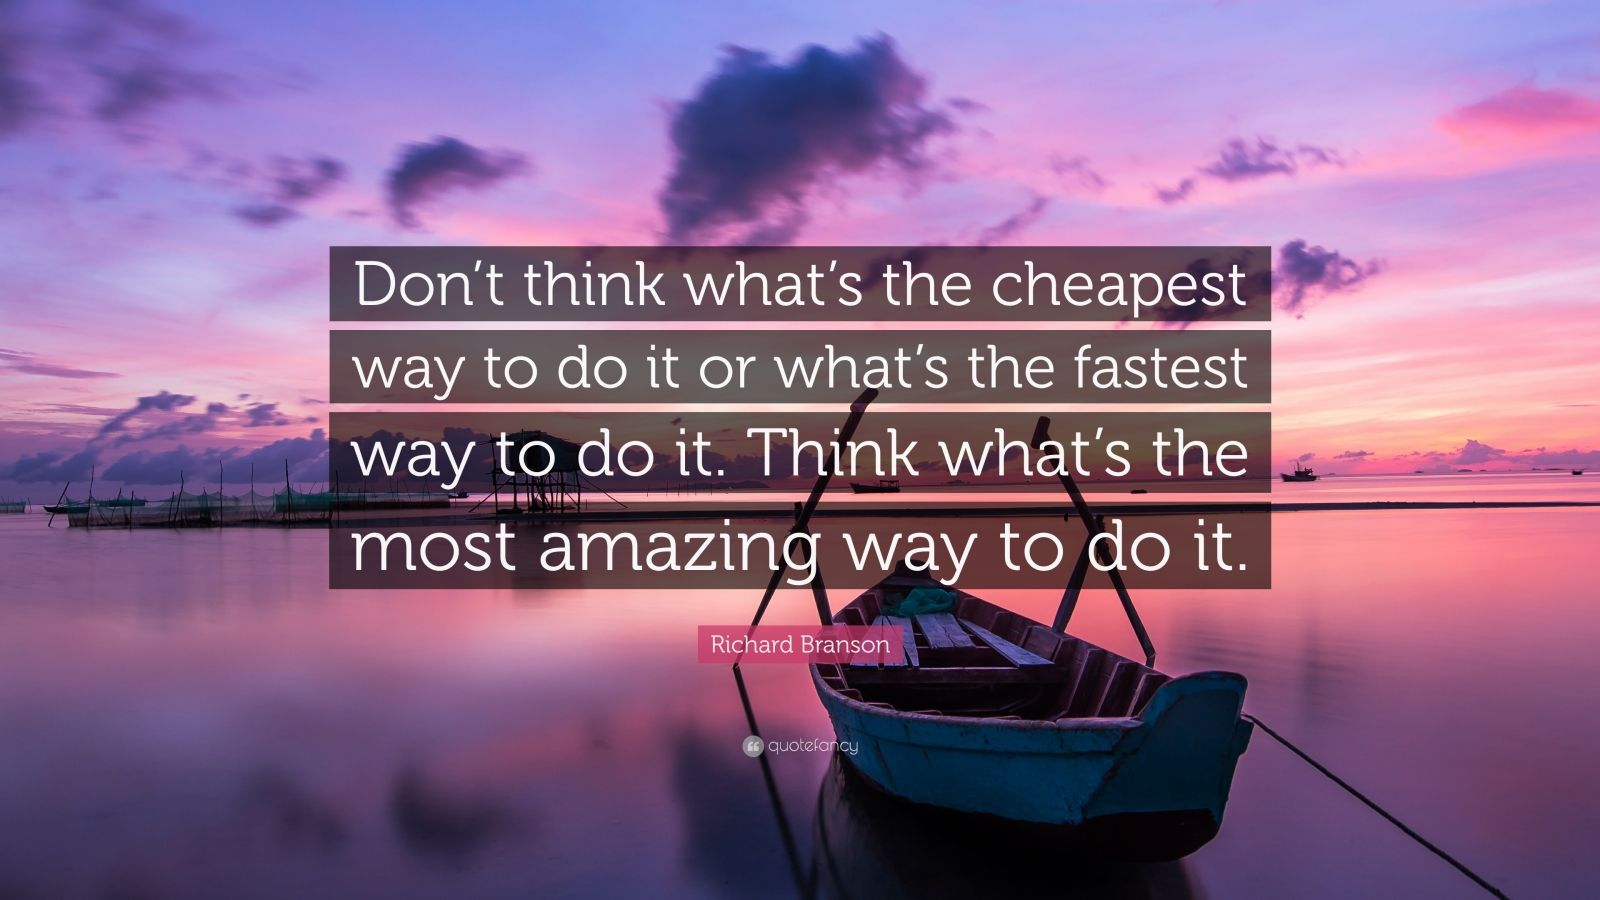 "Richard Branson Quote: ""Don't think what's the cheapest way to do it or what's the fastest way to do it. Think what's the most amazing way to do it."""